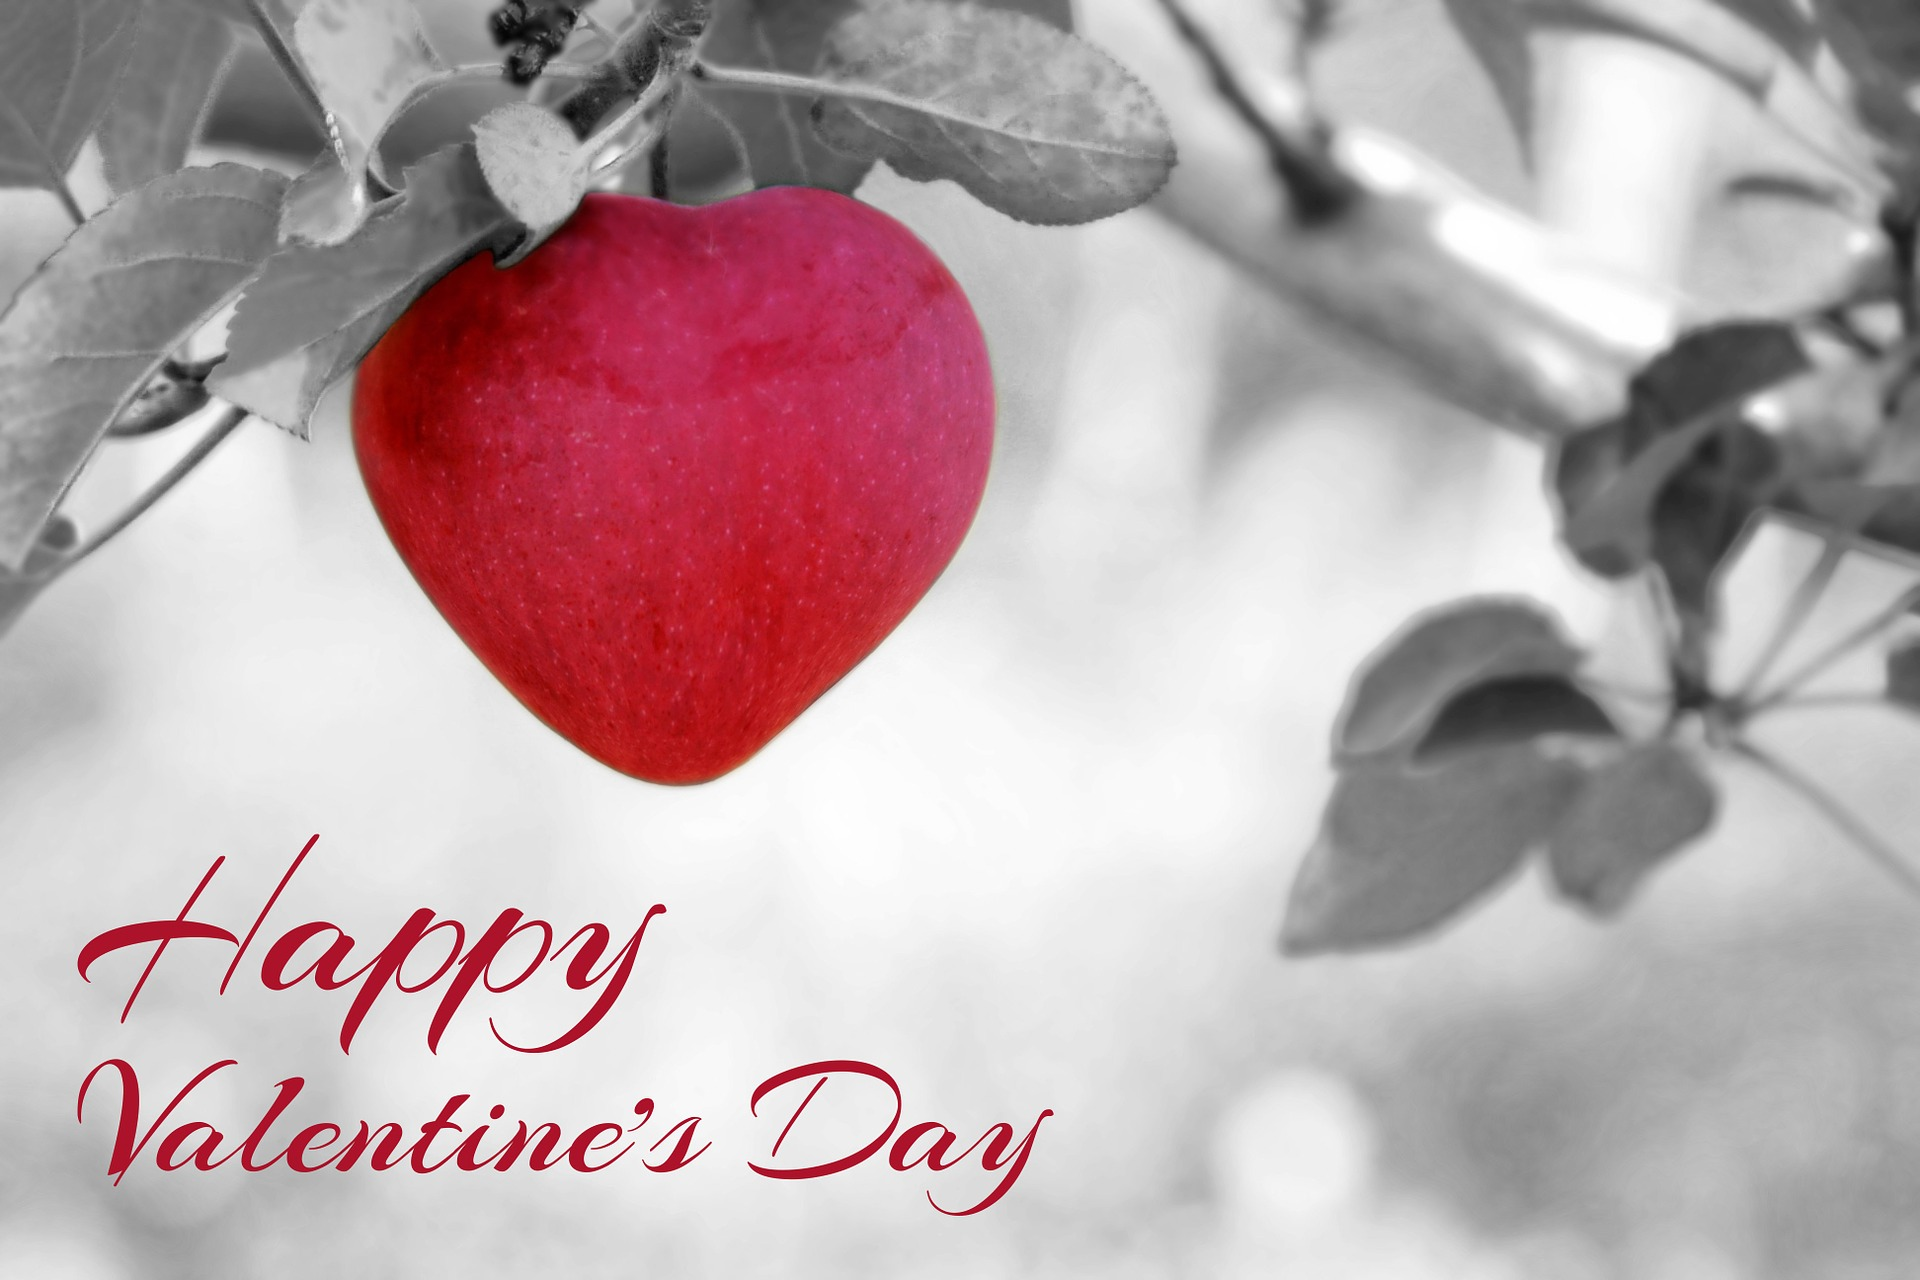 50 Best Valentine S Day Wishes 2017 Sms Messages Greetings